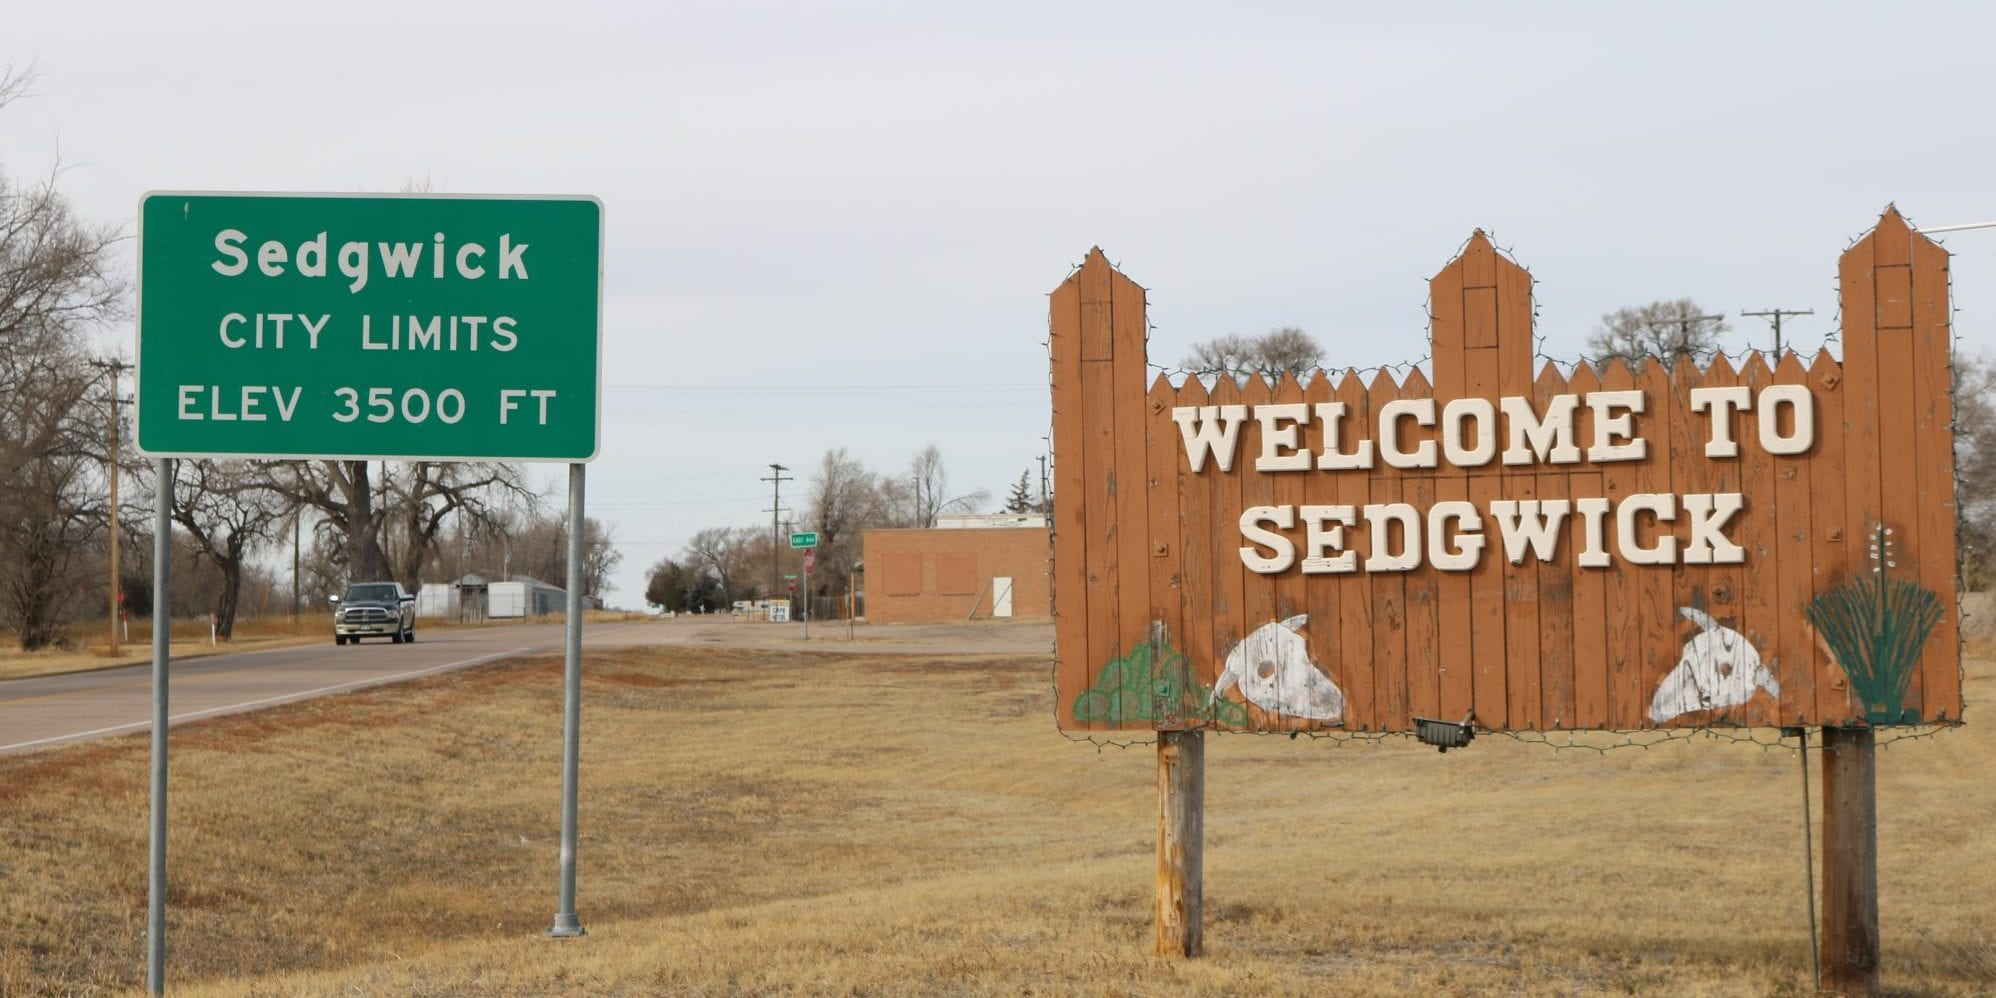 image of the town of sedgwick